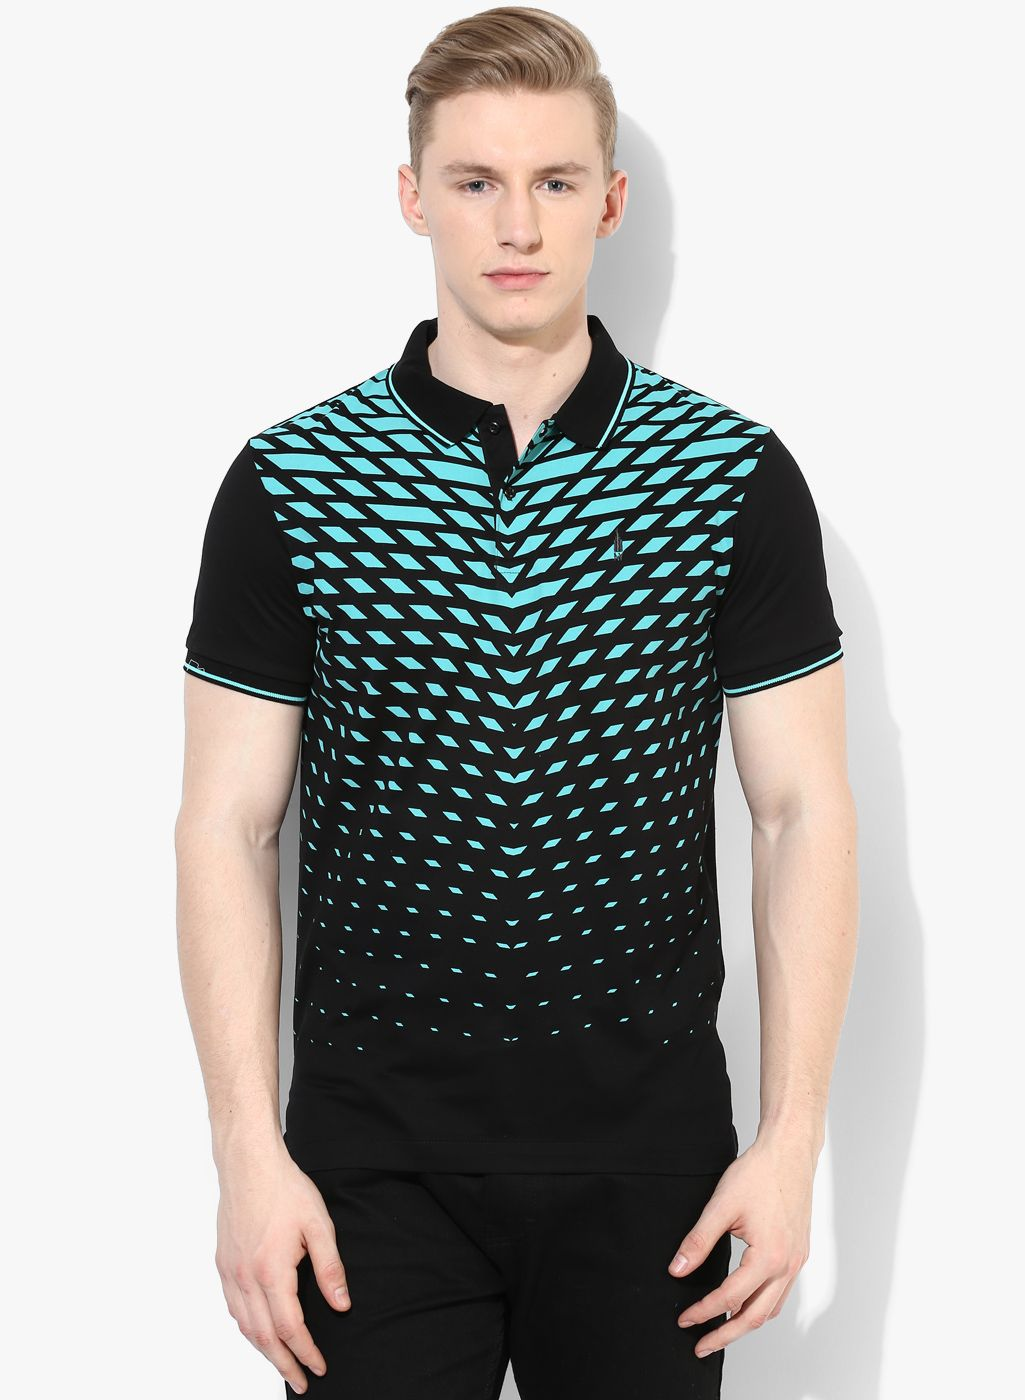 d462c284 Buy Arrow New York Black Printed Regular Fit Polo T-Shirt for Men Online  India, Best Prices, Reviews | AR544MA18ROJINDFAS